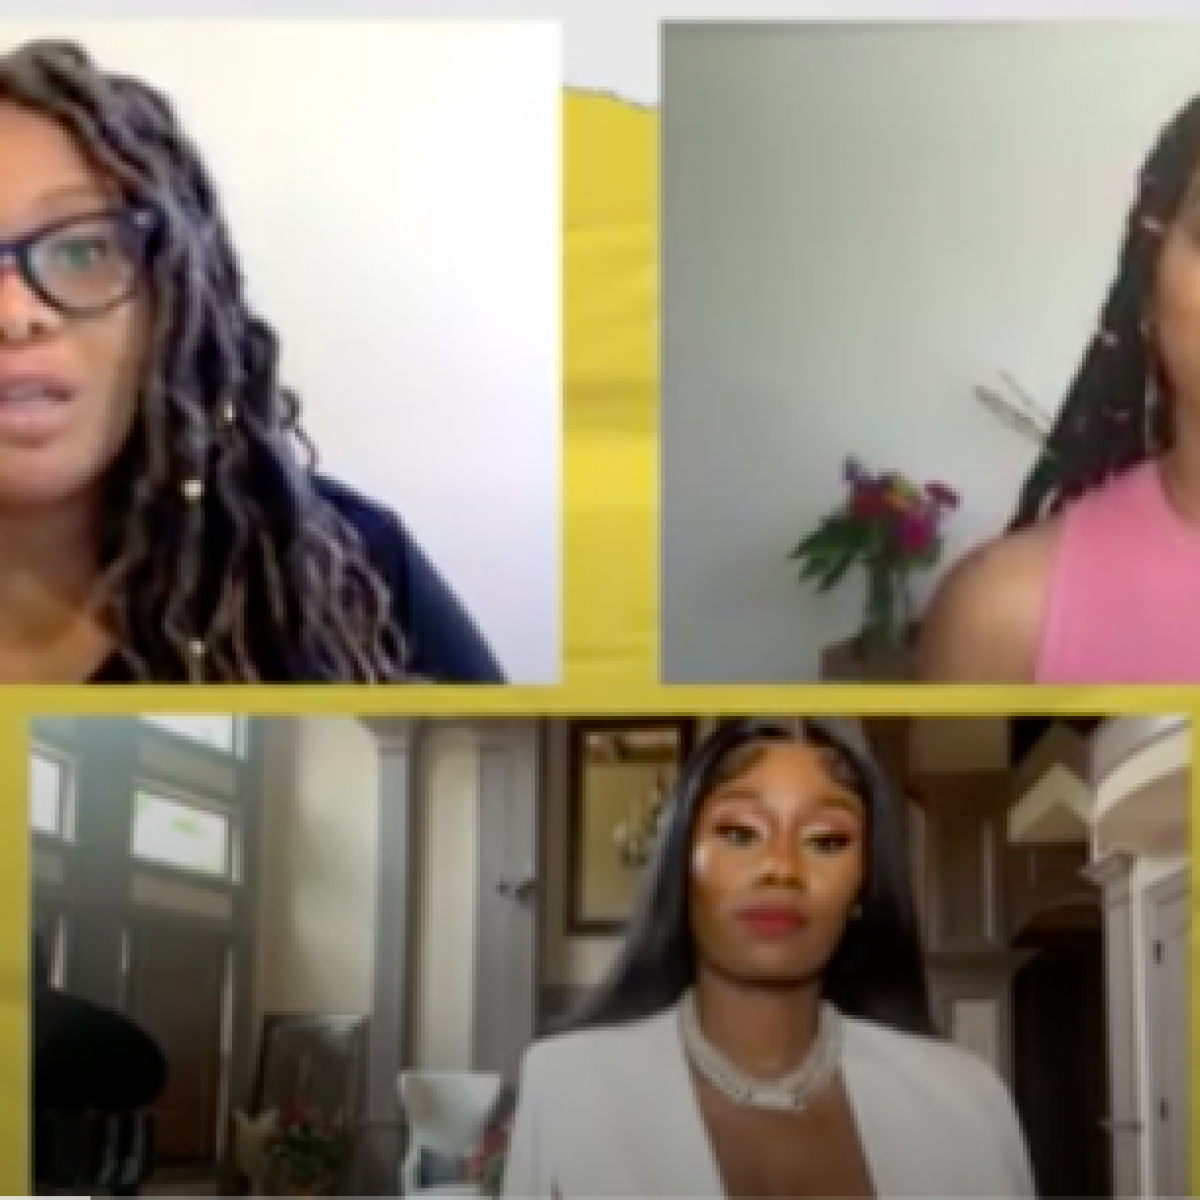 Corinne Foxx and Stacia Mac Give Tips On How To Build An Authentic Business Sense